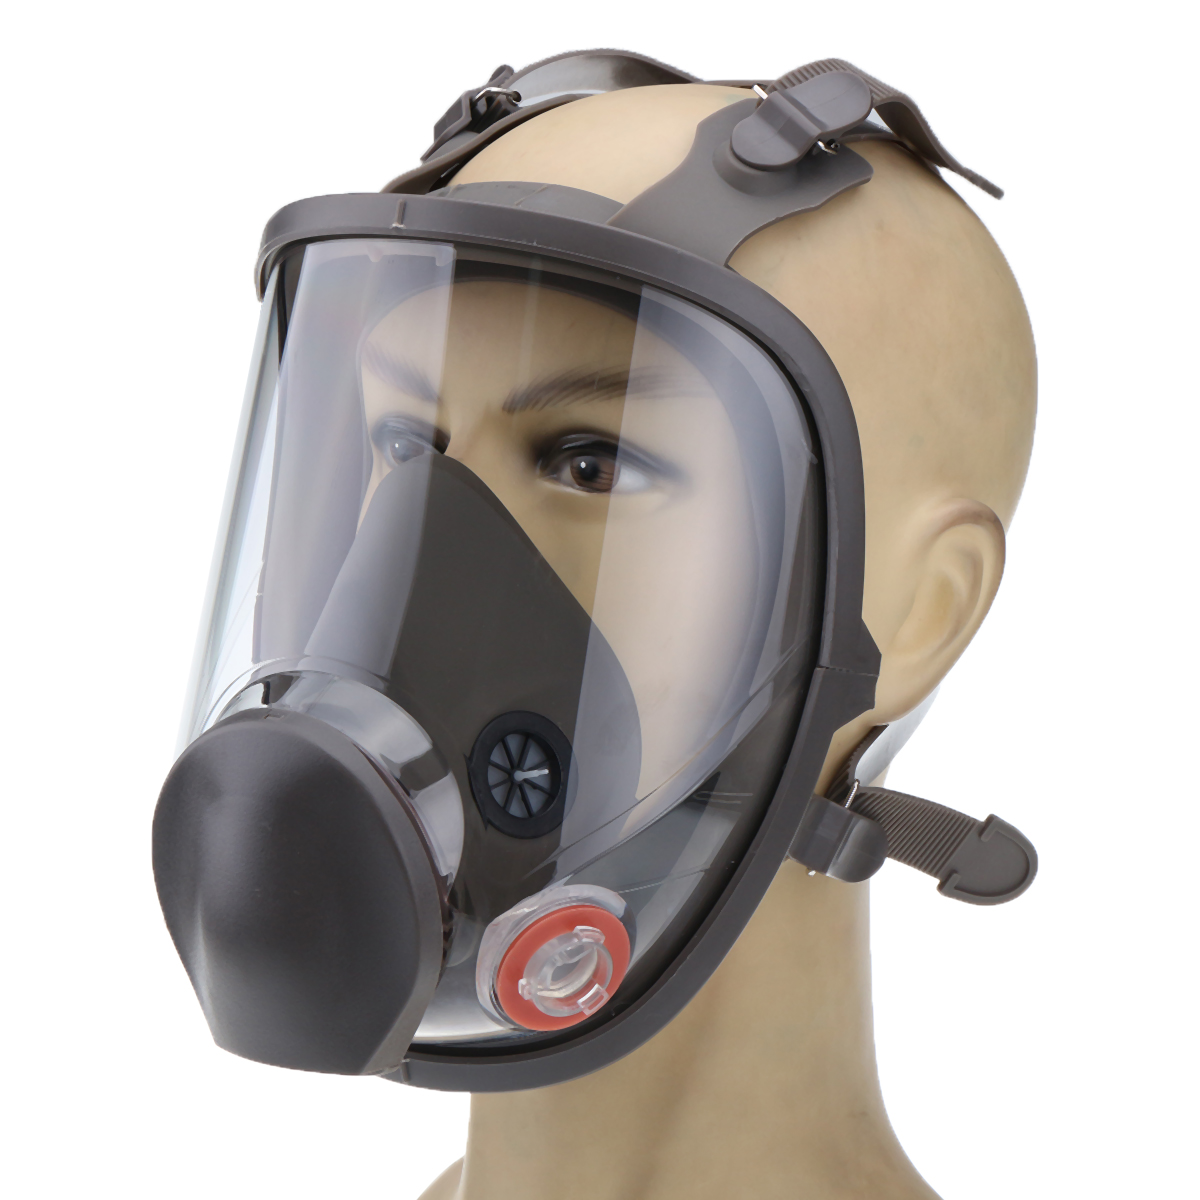 Silicone Facepiece Respirator 6800 Full Face Gas Mask Painting Spraying Protective Mask